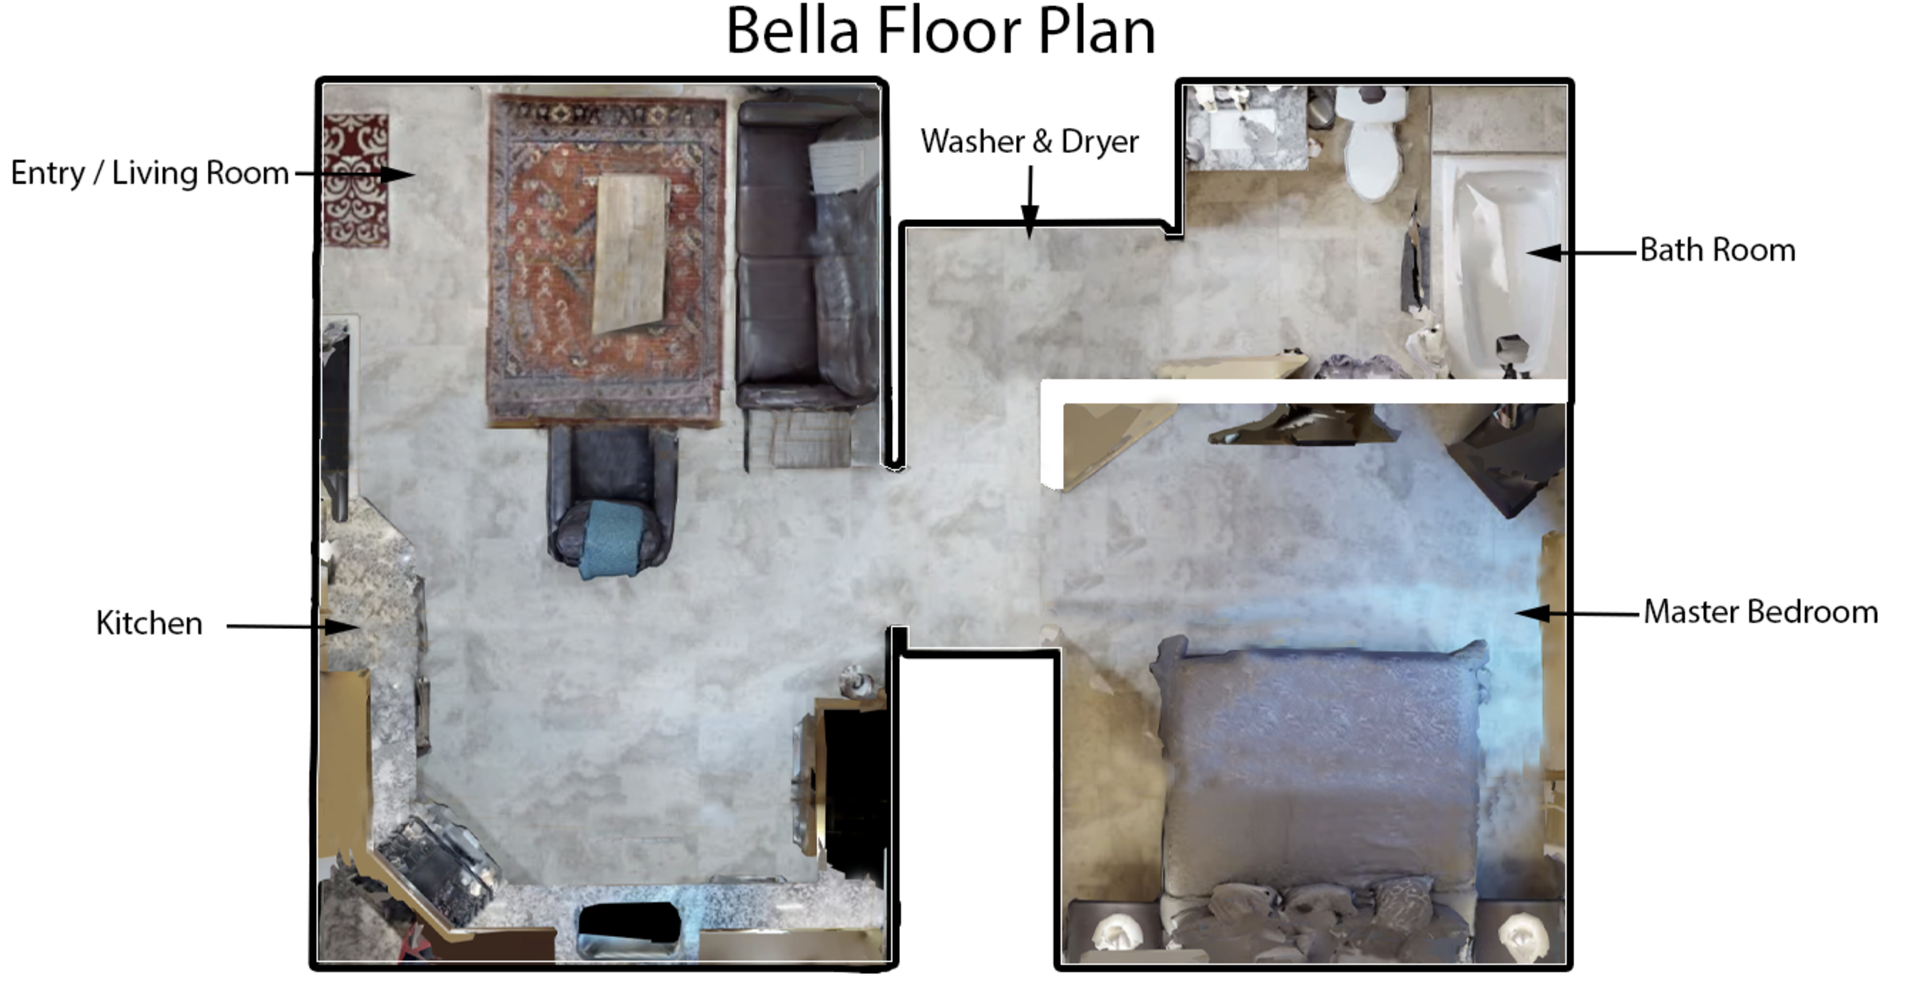 Floor Plan for Bella